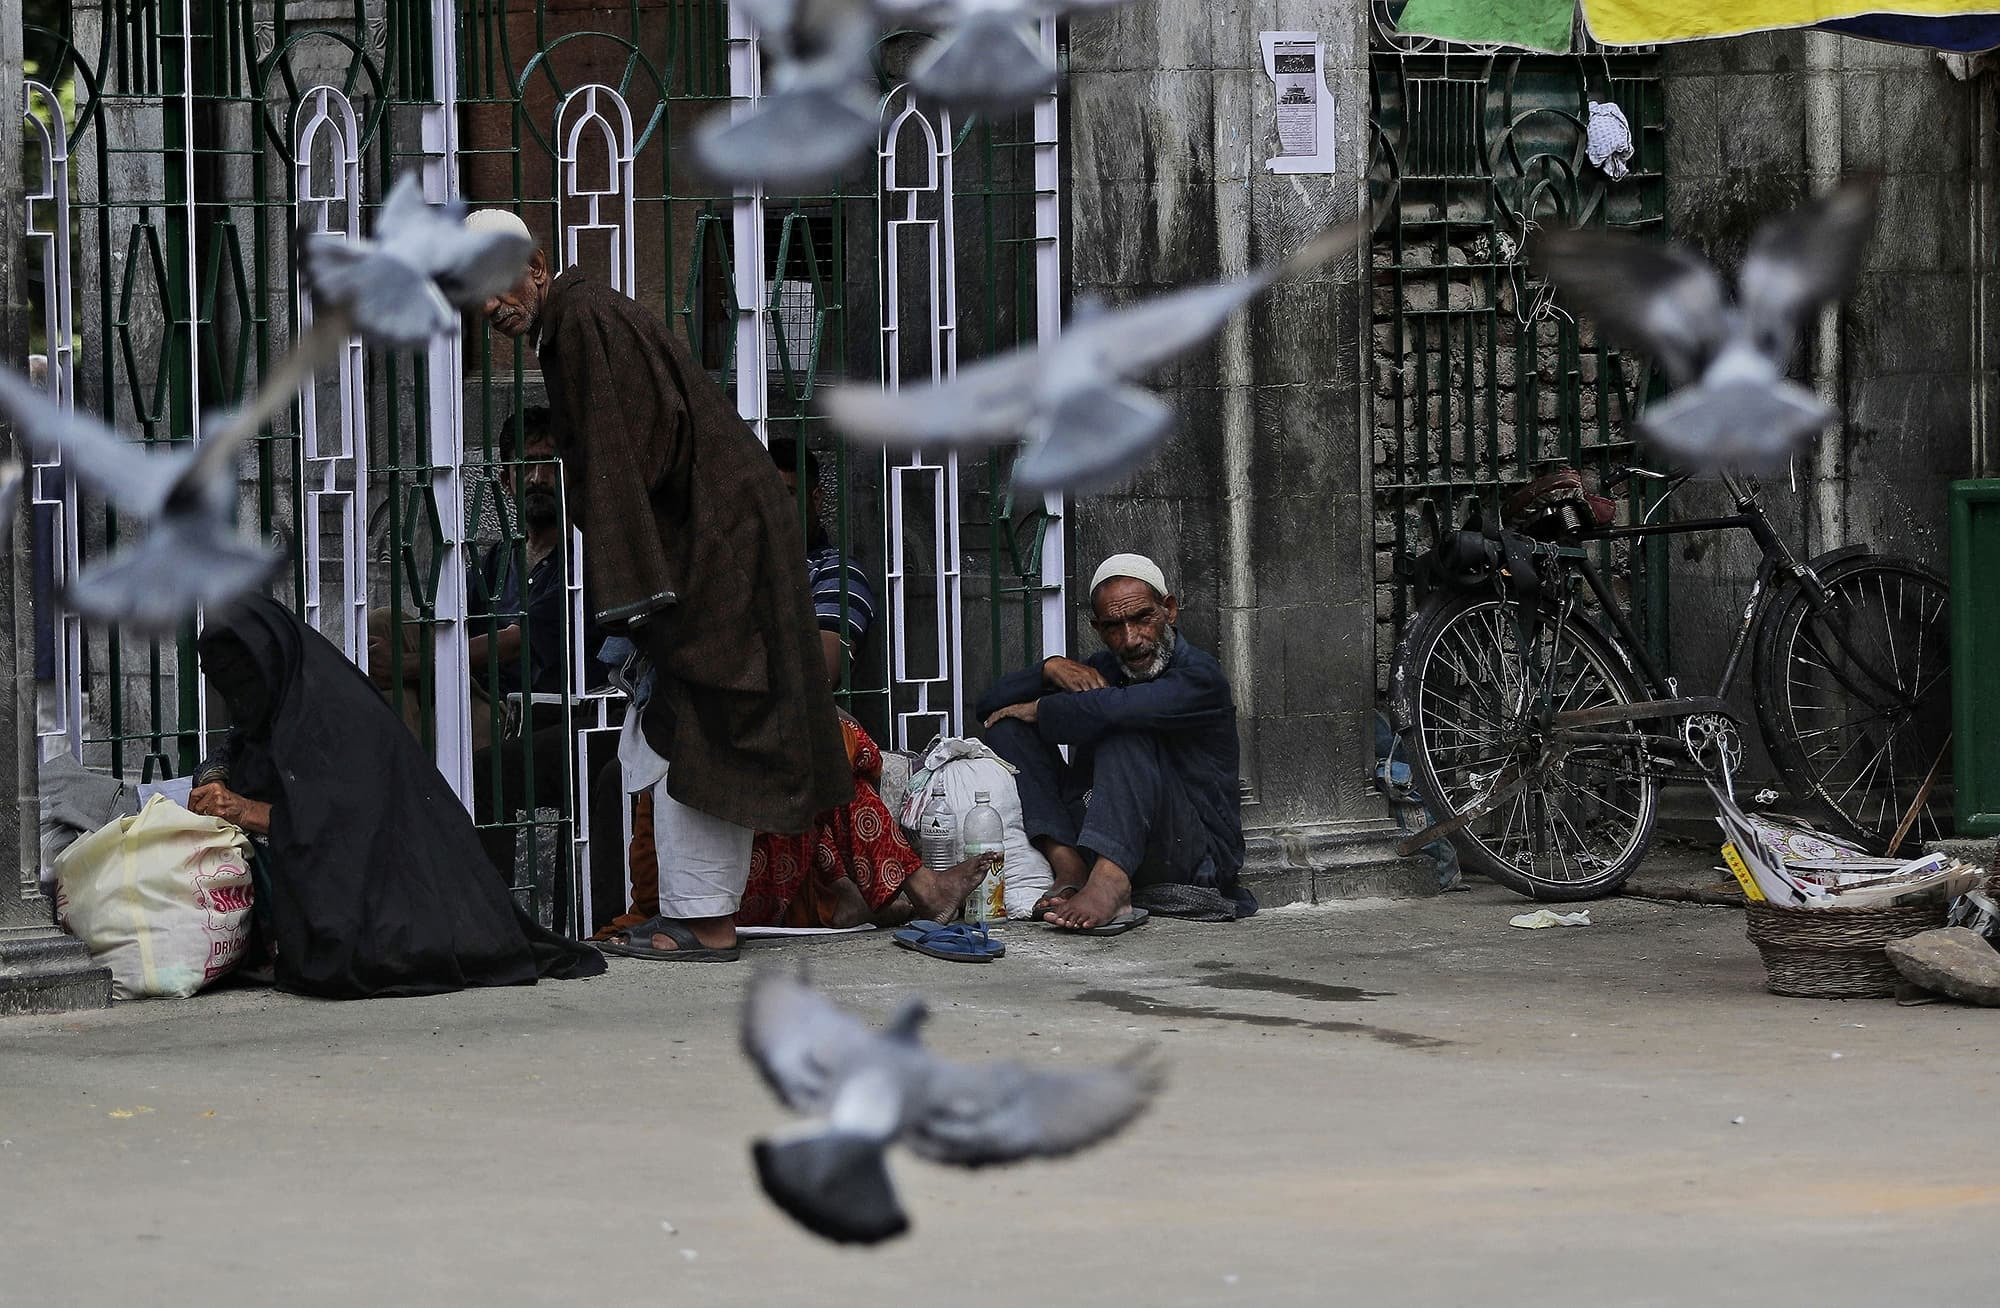 In this Friday, Aug. 9, 2019, photo, Kashmiris sit outside a Muslim shrine during a curfew in Srinagar, Indian controlled Kashmiri. Authorities enforcing a strict curfew in Indian-administered Kashmir will bring in trucks of essential supplies for an Islamic festival next week, as the divided Himalayan region remained in a lockdown following India's decision to strip it of its constitutional autonomy. The indefinite 24-hour curfew was briefly eased on Friday for weekly Muslim prayers in some parts of Srinagar, the region's main city, but thousands of residents are still forced to stay indoors